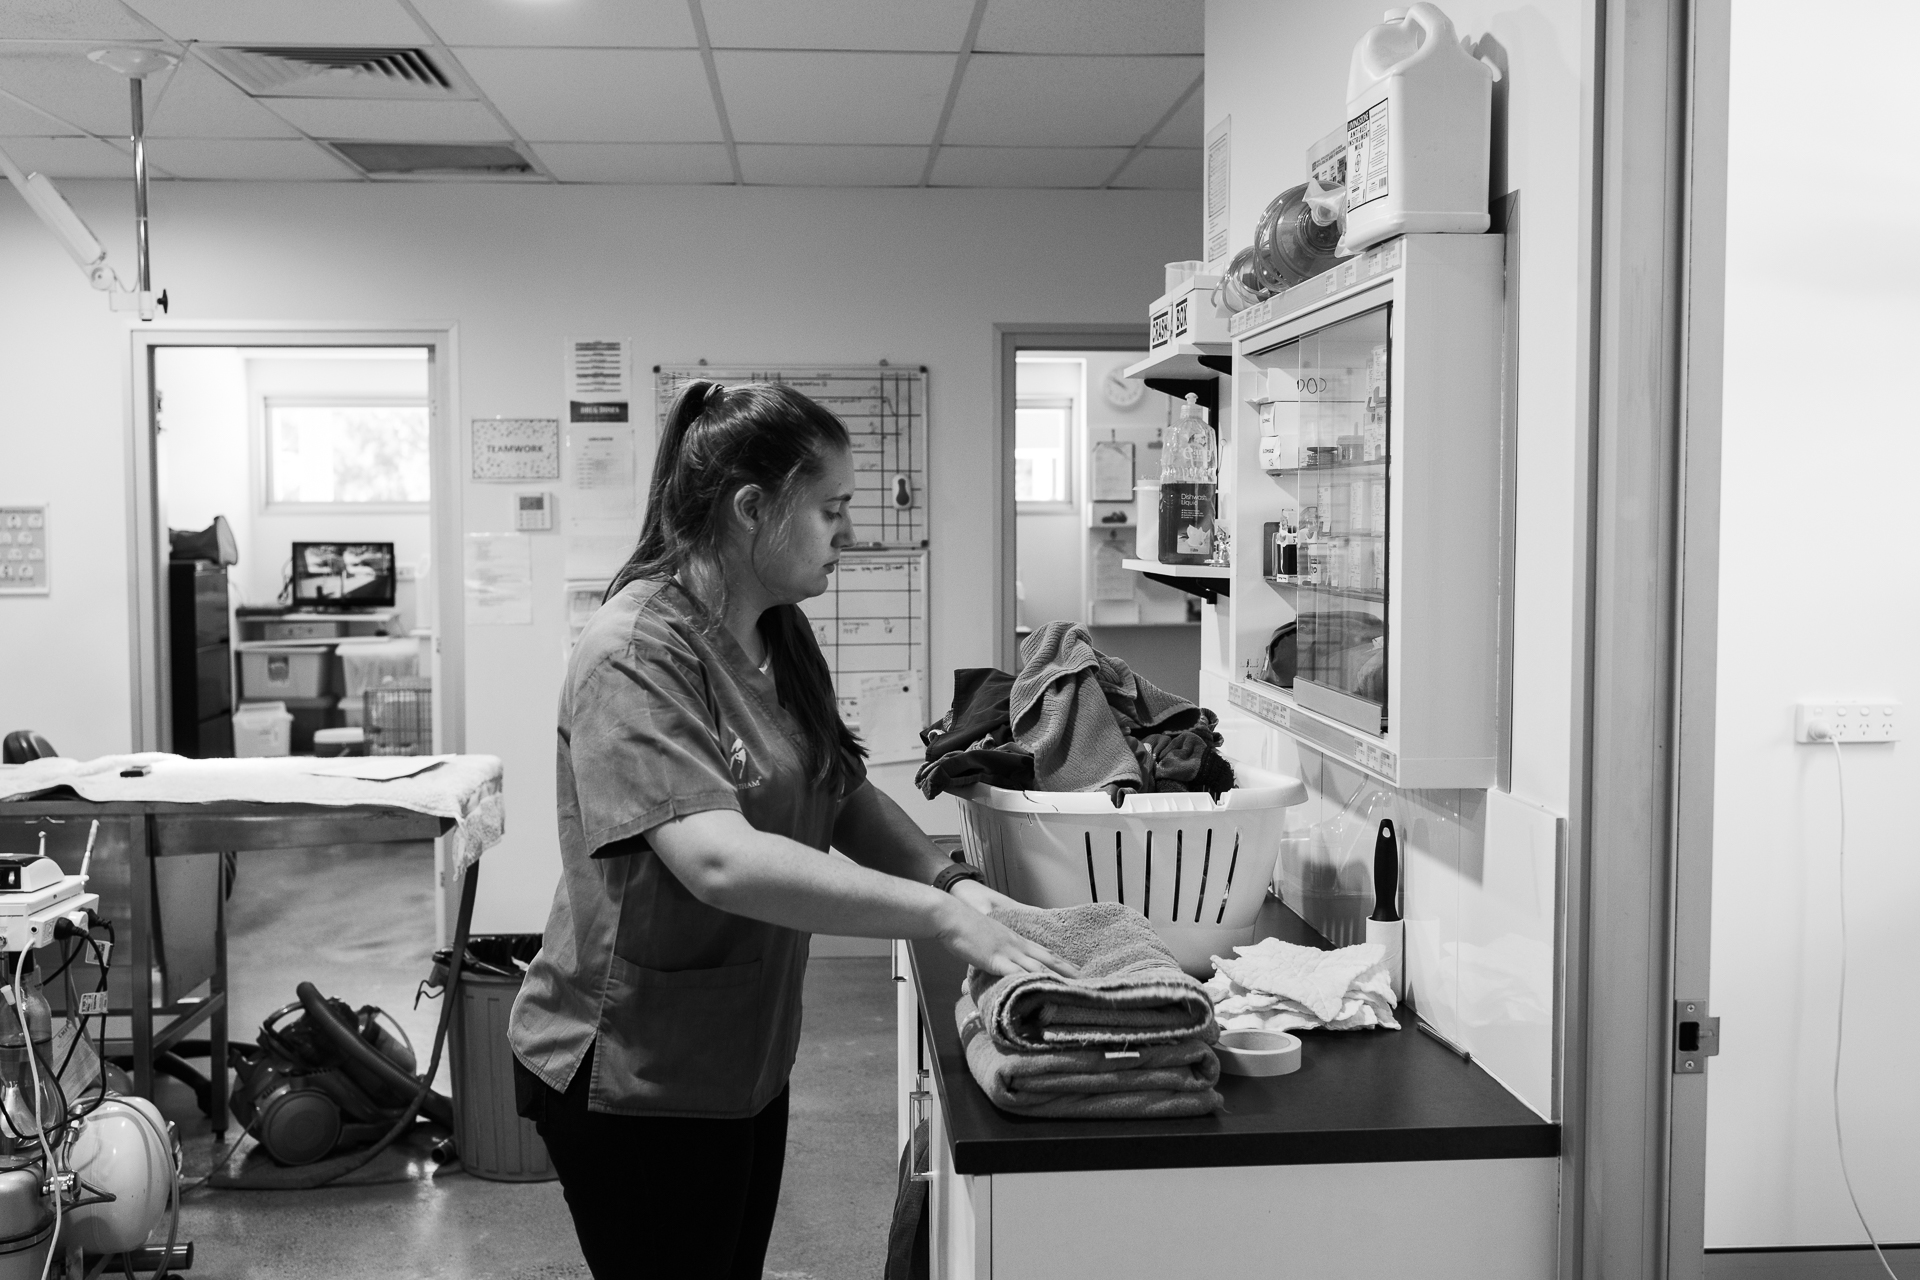 Trainee Nurse Claire Goodlock tackles the endless laundry of a veterinary practice.  9 March, 2018.